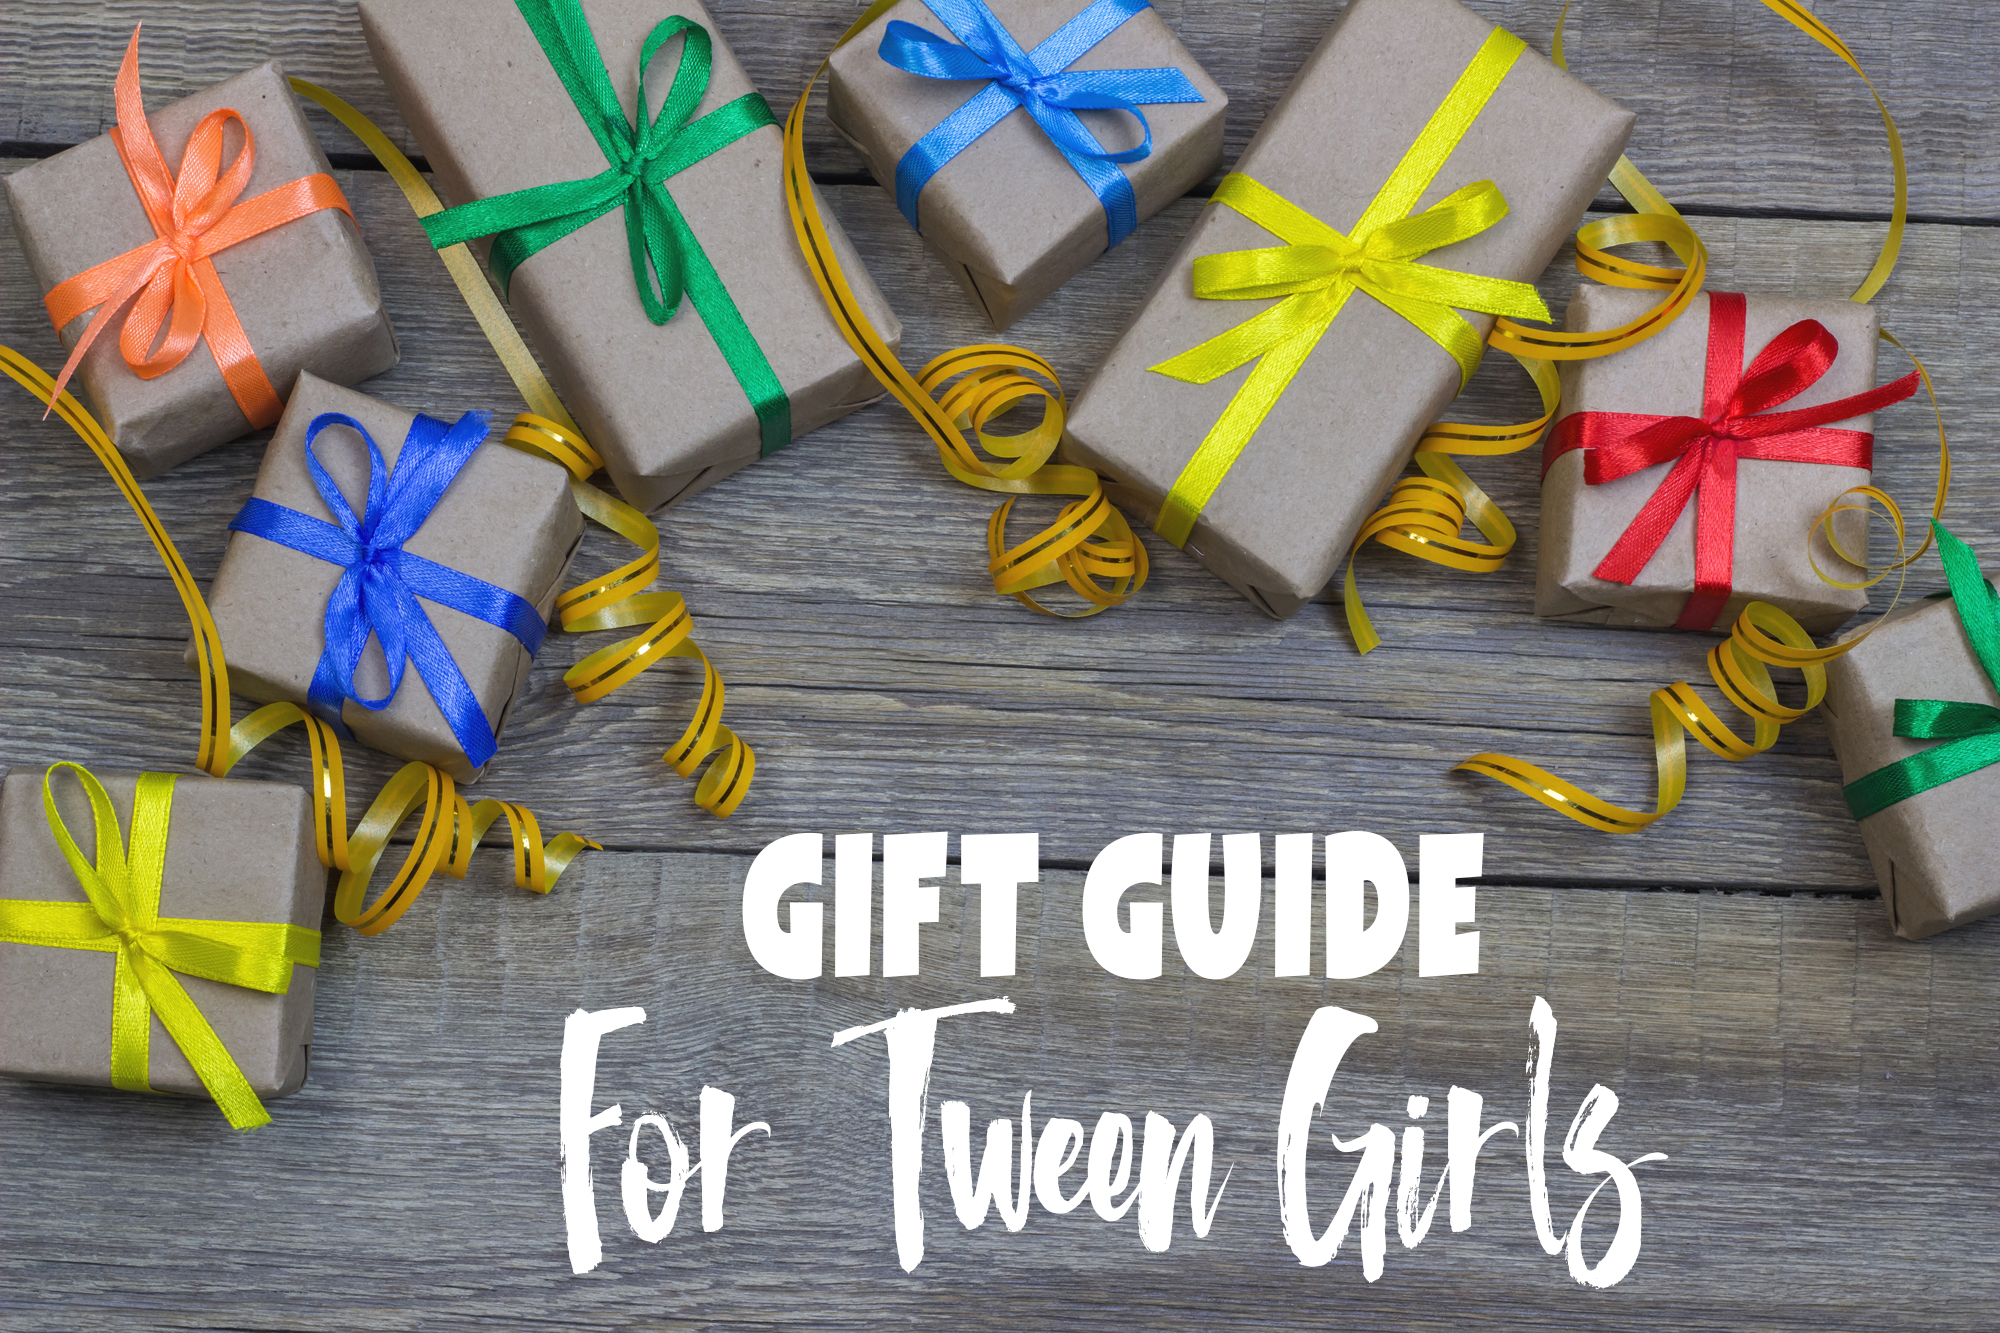 Gift Ideas For Tween Girls They Will Love 2018 Gift Guide Raising